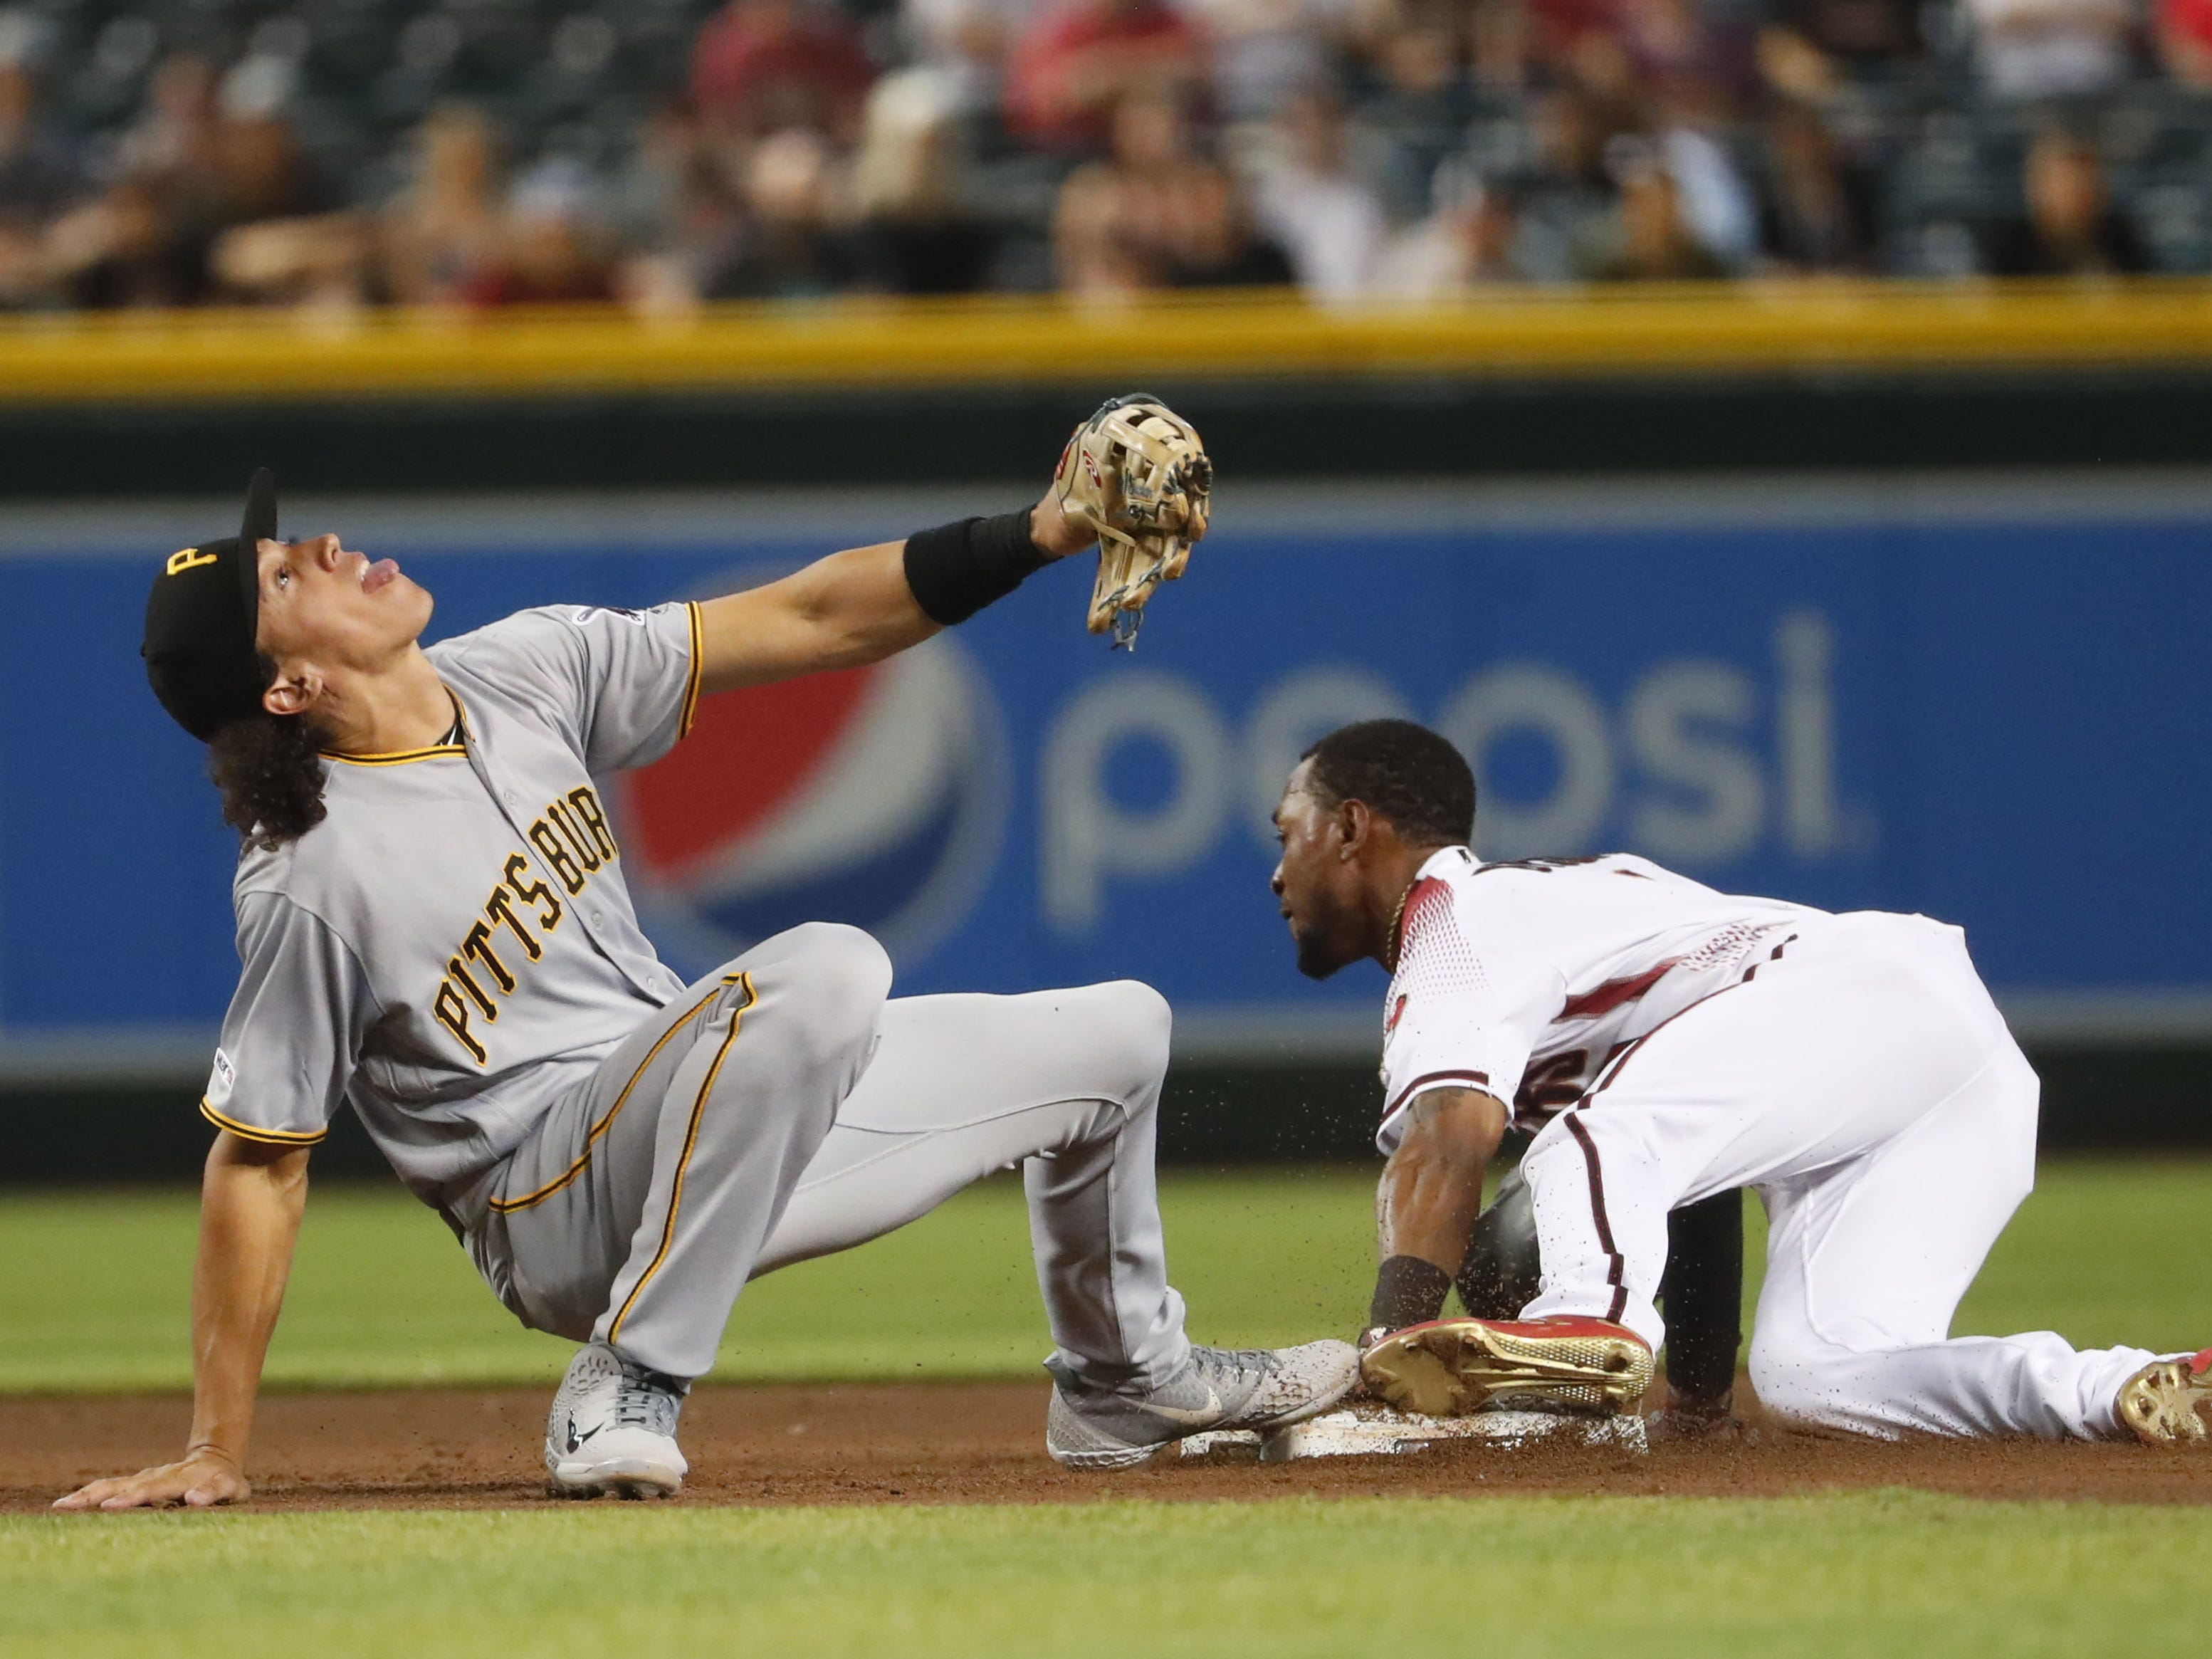 Arizona Diamondbacks center fielder Jarrod Dyson (1) steals second base as Pittsburgh Pirates shortstop Cole Tucker (3) looks for the ball during the fourth inning. at Chase Field in Phoenix, Ariz. May 15, 2019.